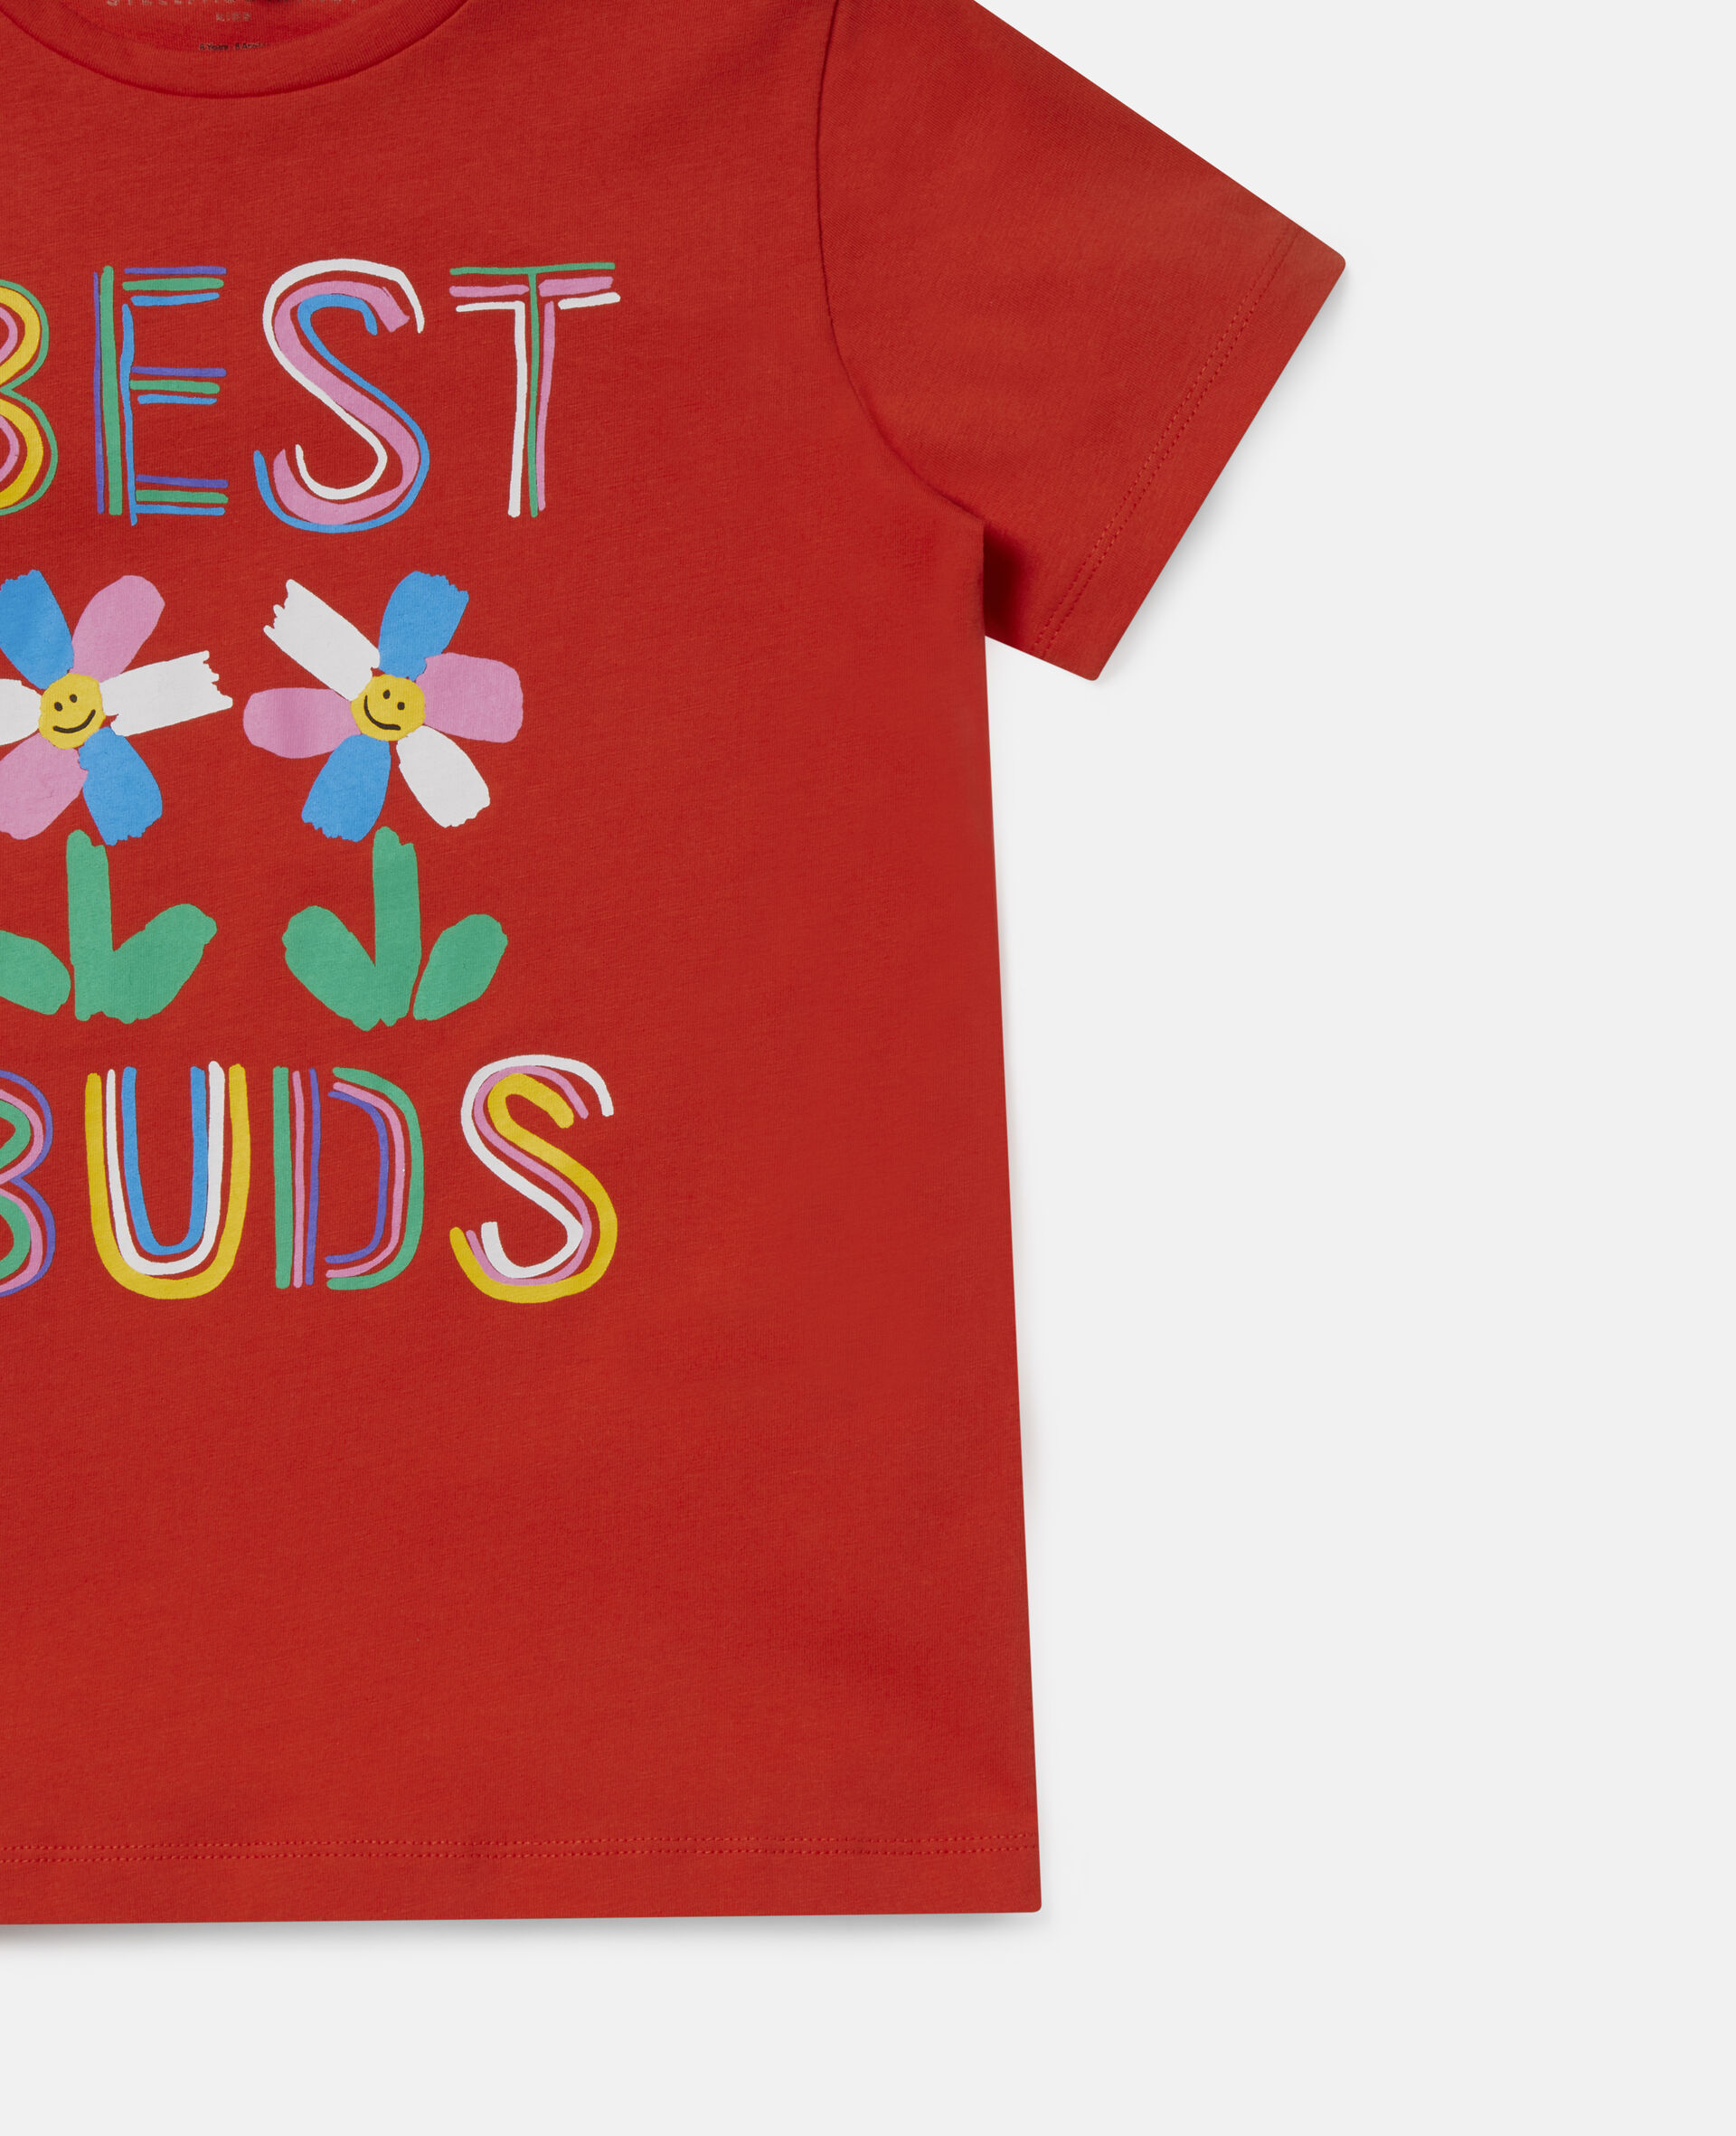 Best Buds Cotton T-shirt-Red-large image number 1